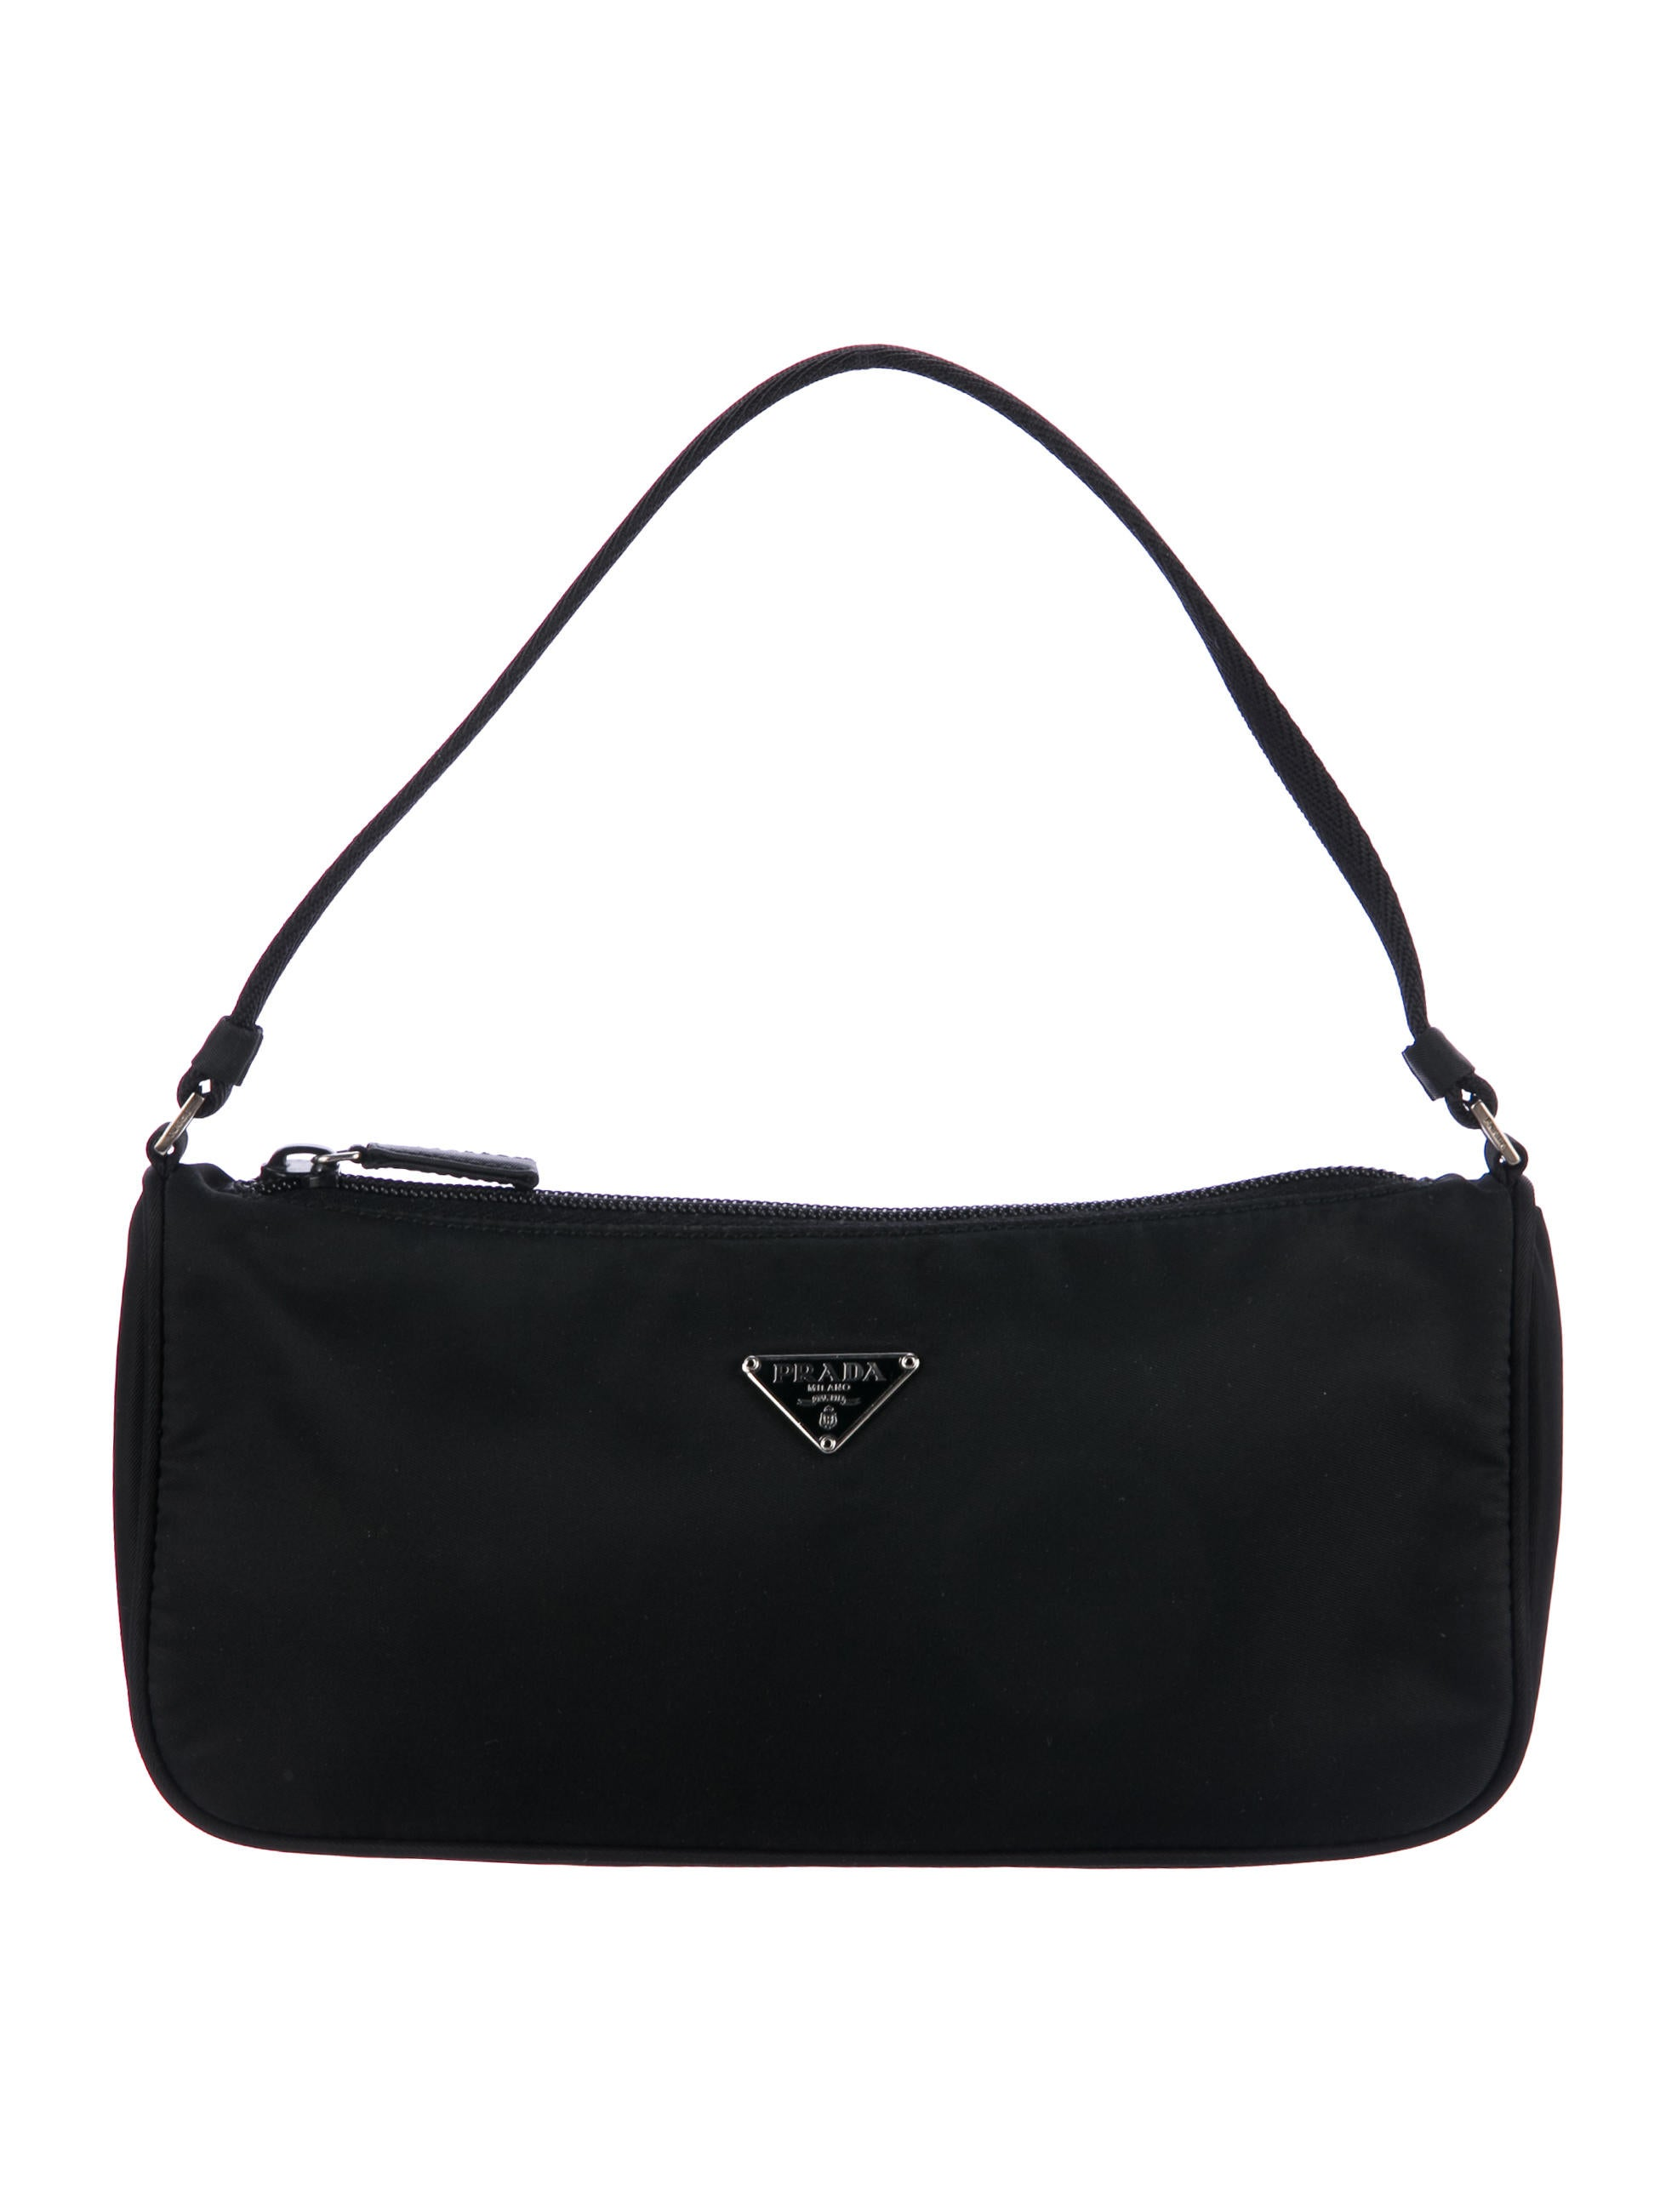 a44369bd2980 Prada Tessuto Sport Mini Bag - Handbags - PRA168939 | The RealReal